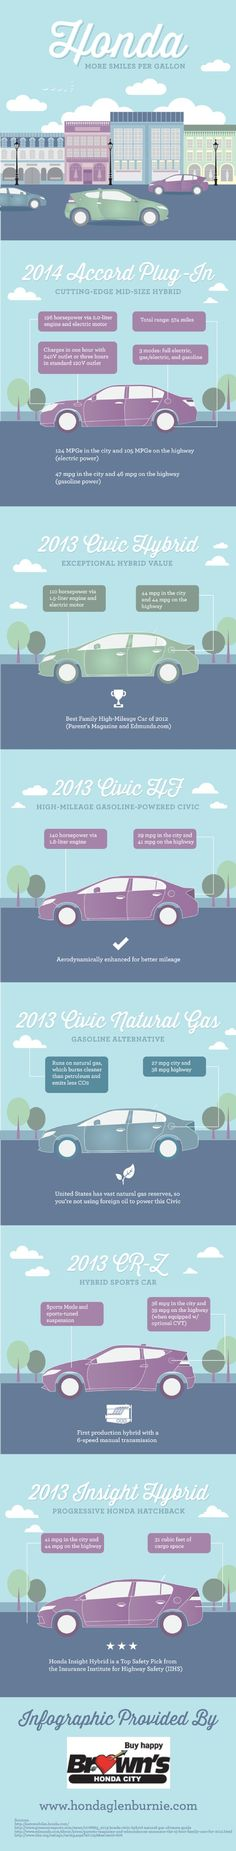 The 2013 Honda Insight Hybrid has a reputation for safety. In fact, this hatchback is a Top Safety Pick from the Insurance Institute for Highway Safety! You can read more about this amazing Honda and others on this infographic from a Baltimore Honda dealer.